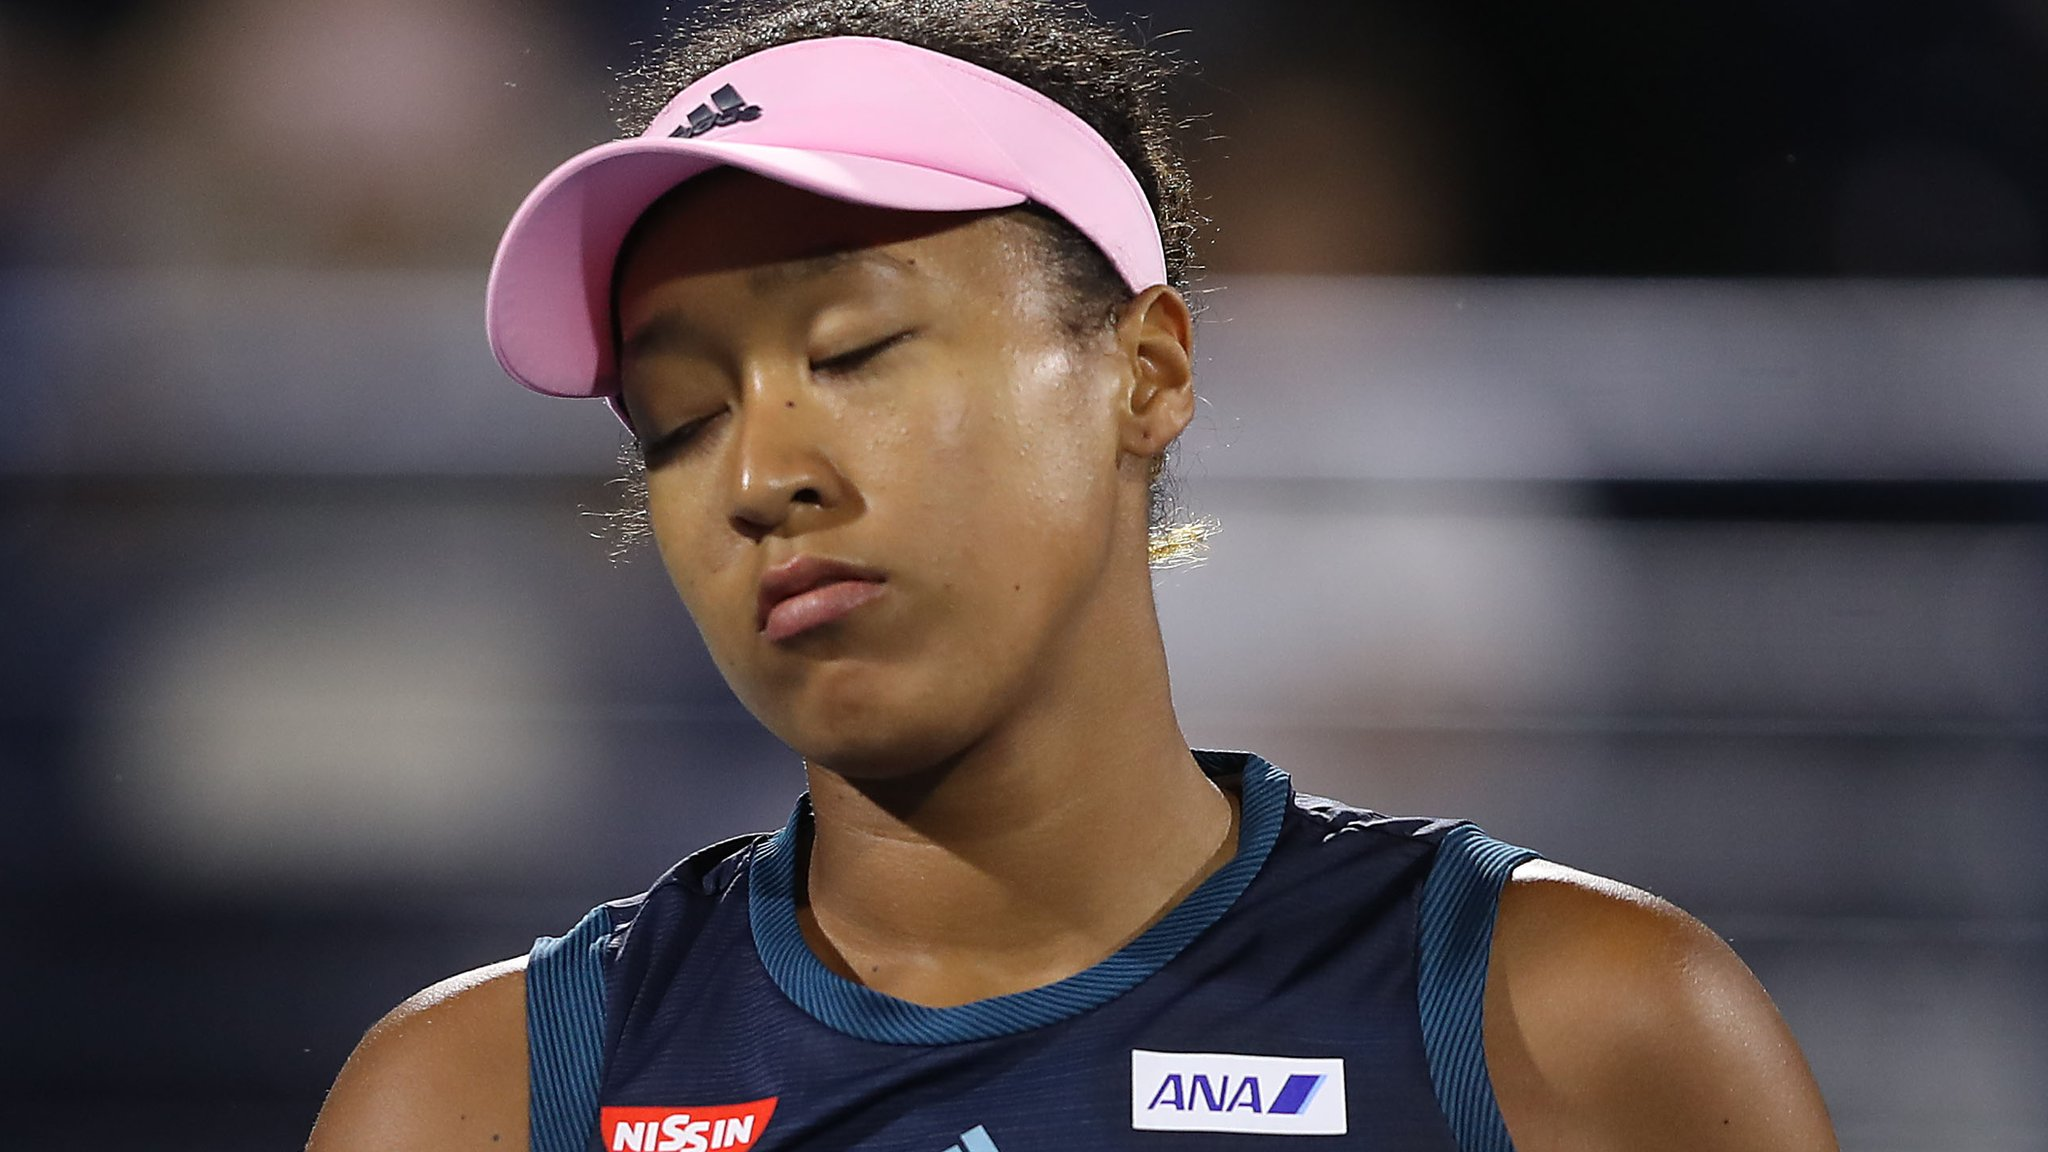 'I feel like people are staring at me' - Osaka blames scrutiny for defeat